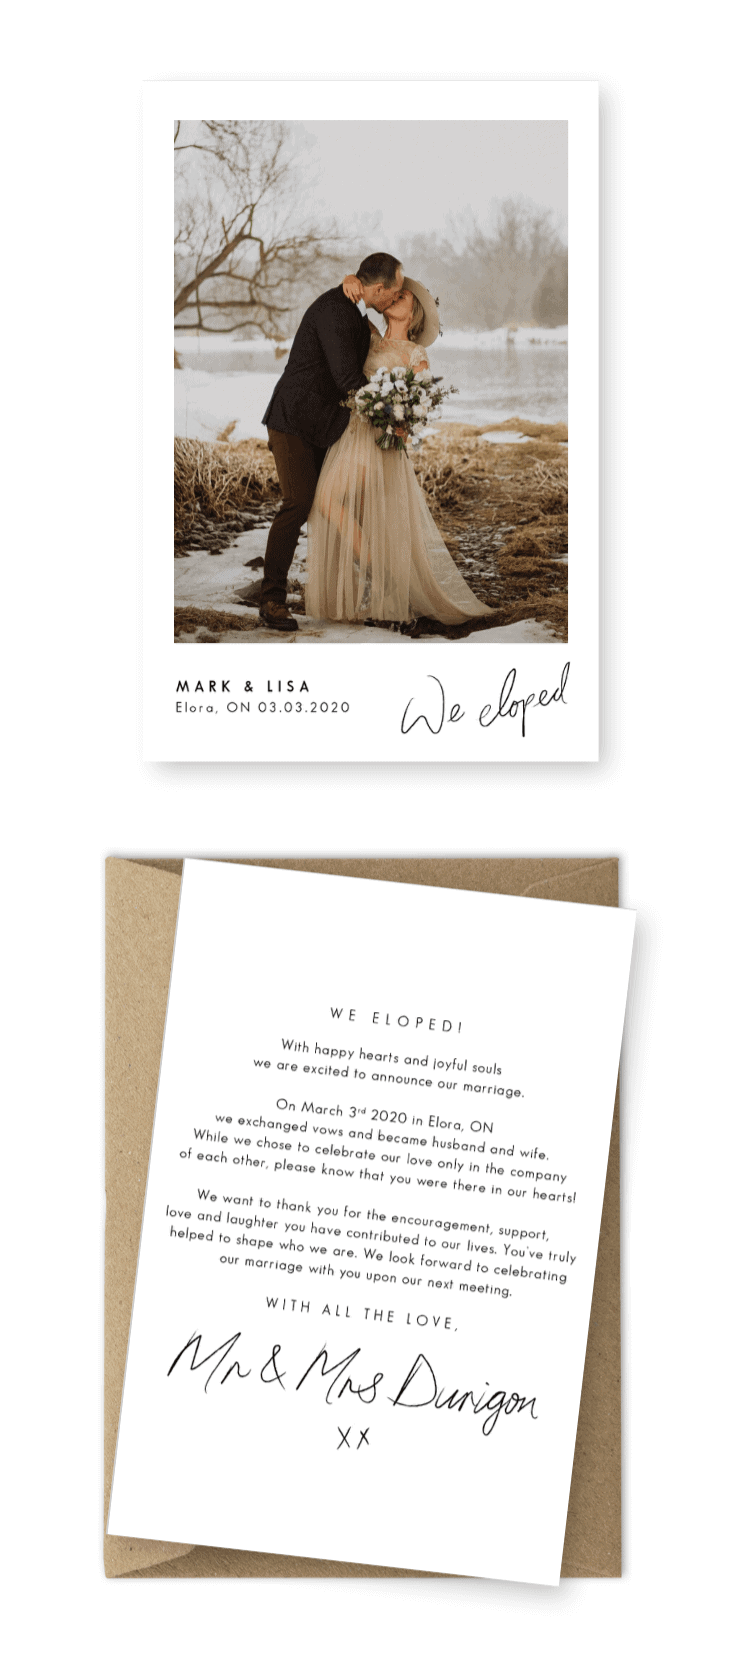 Elopement Announcement Wording Ideas For the Love of Stationery Ally Billings Photography